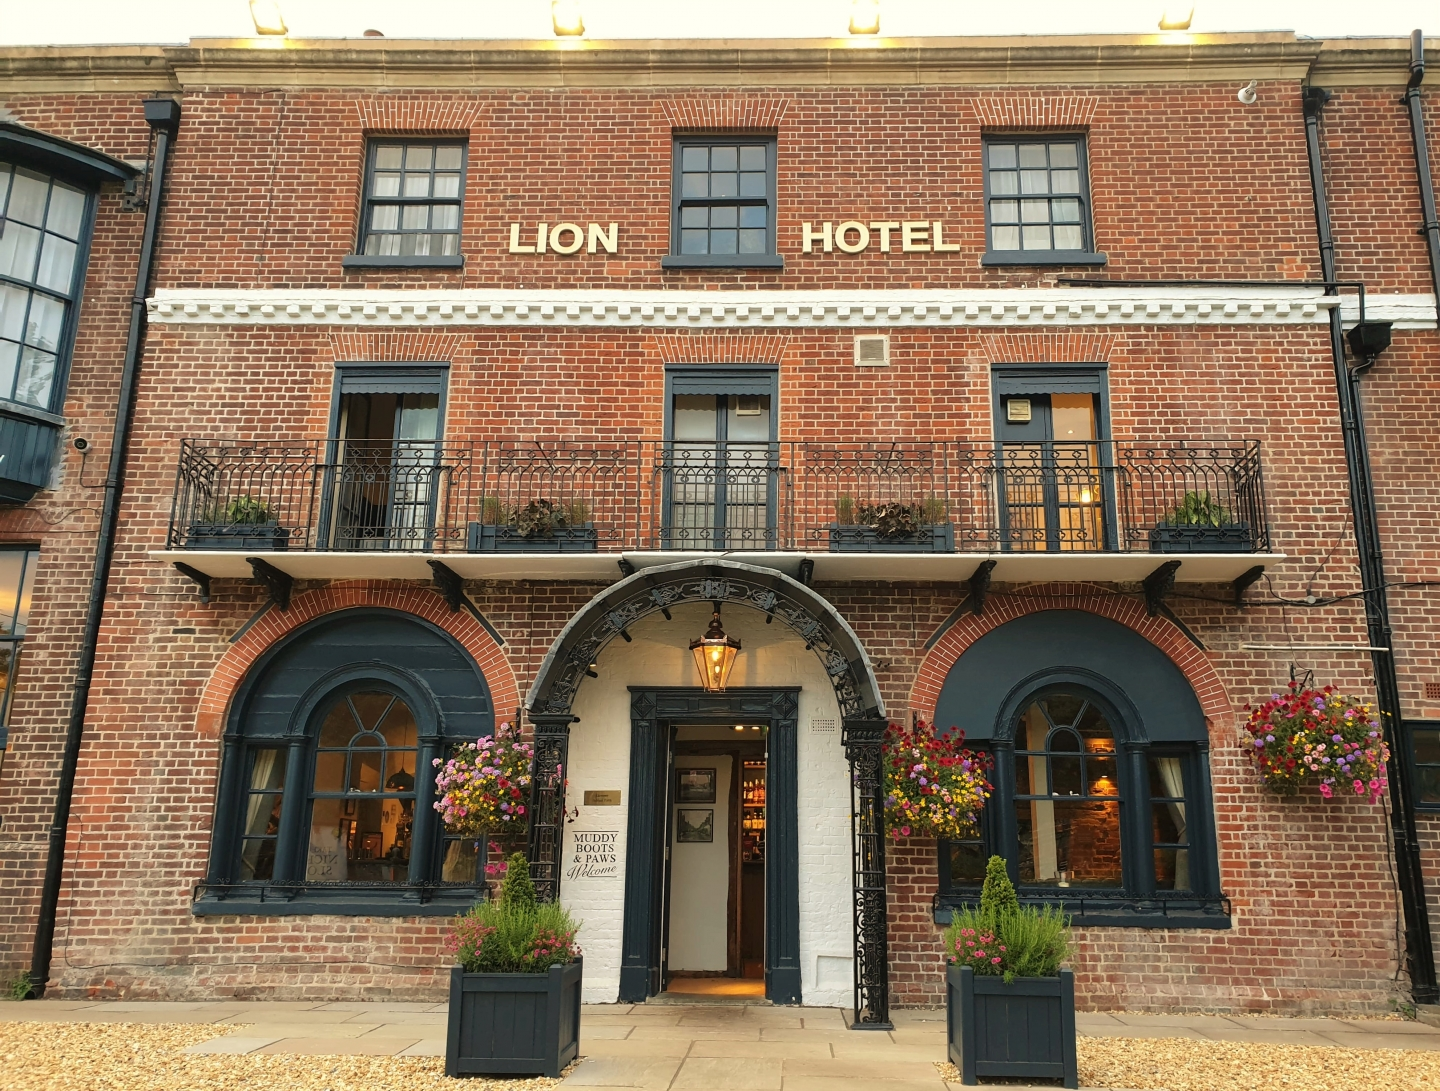 The Lion Hotel, Farningham, August 2019